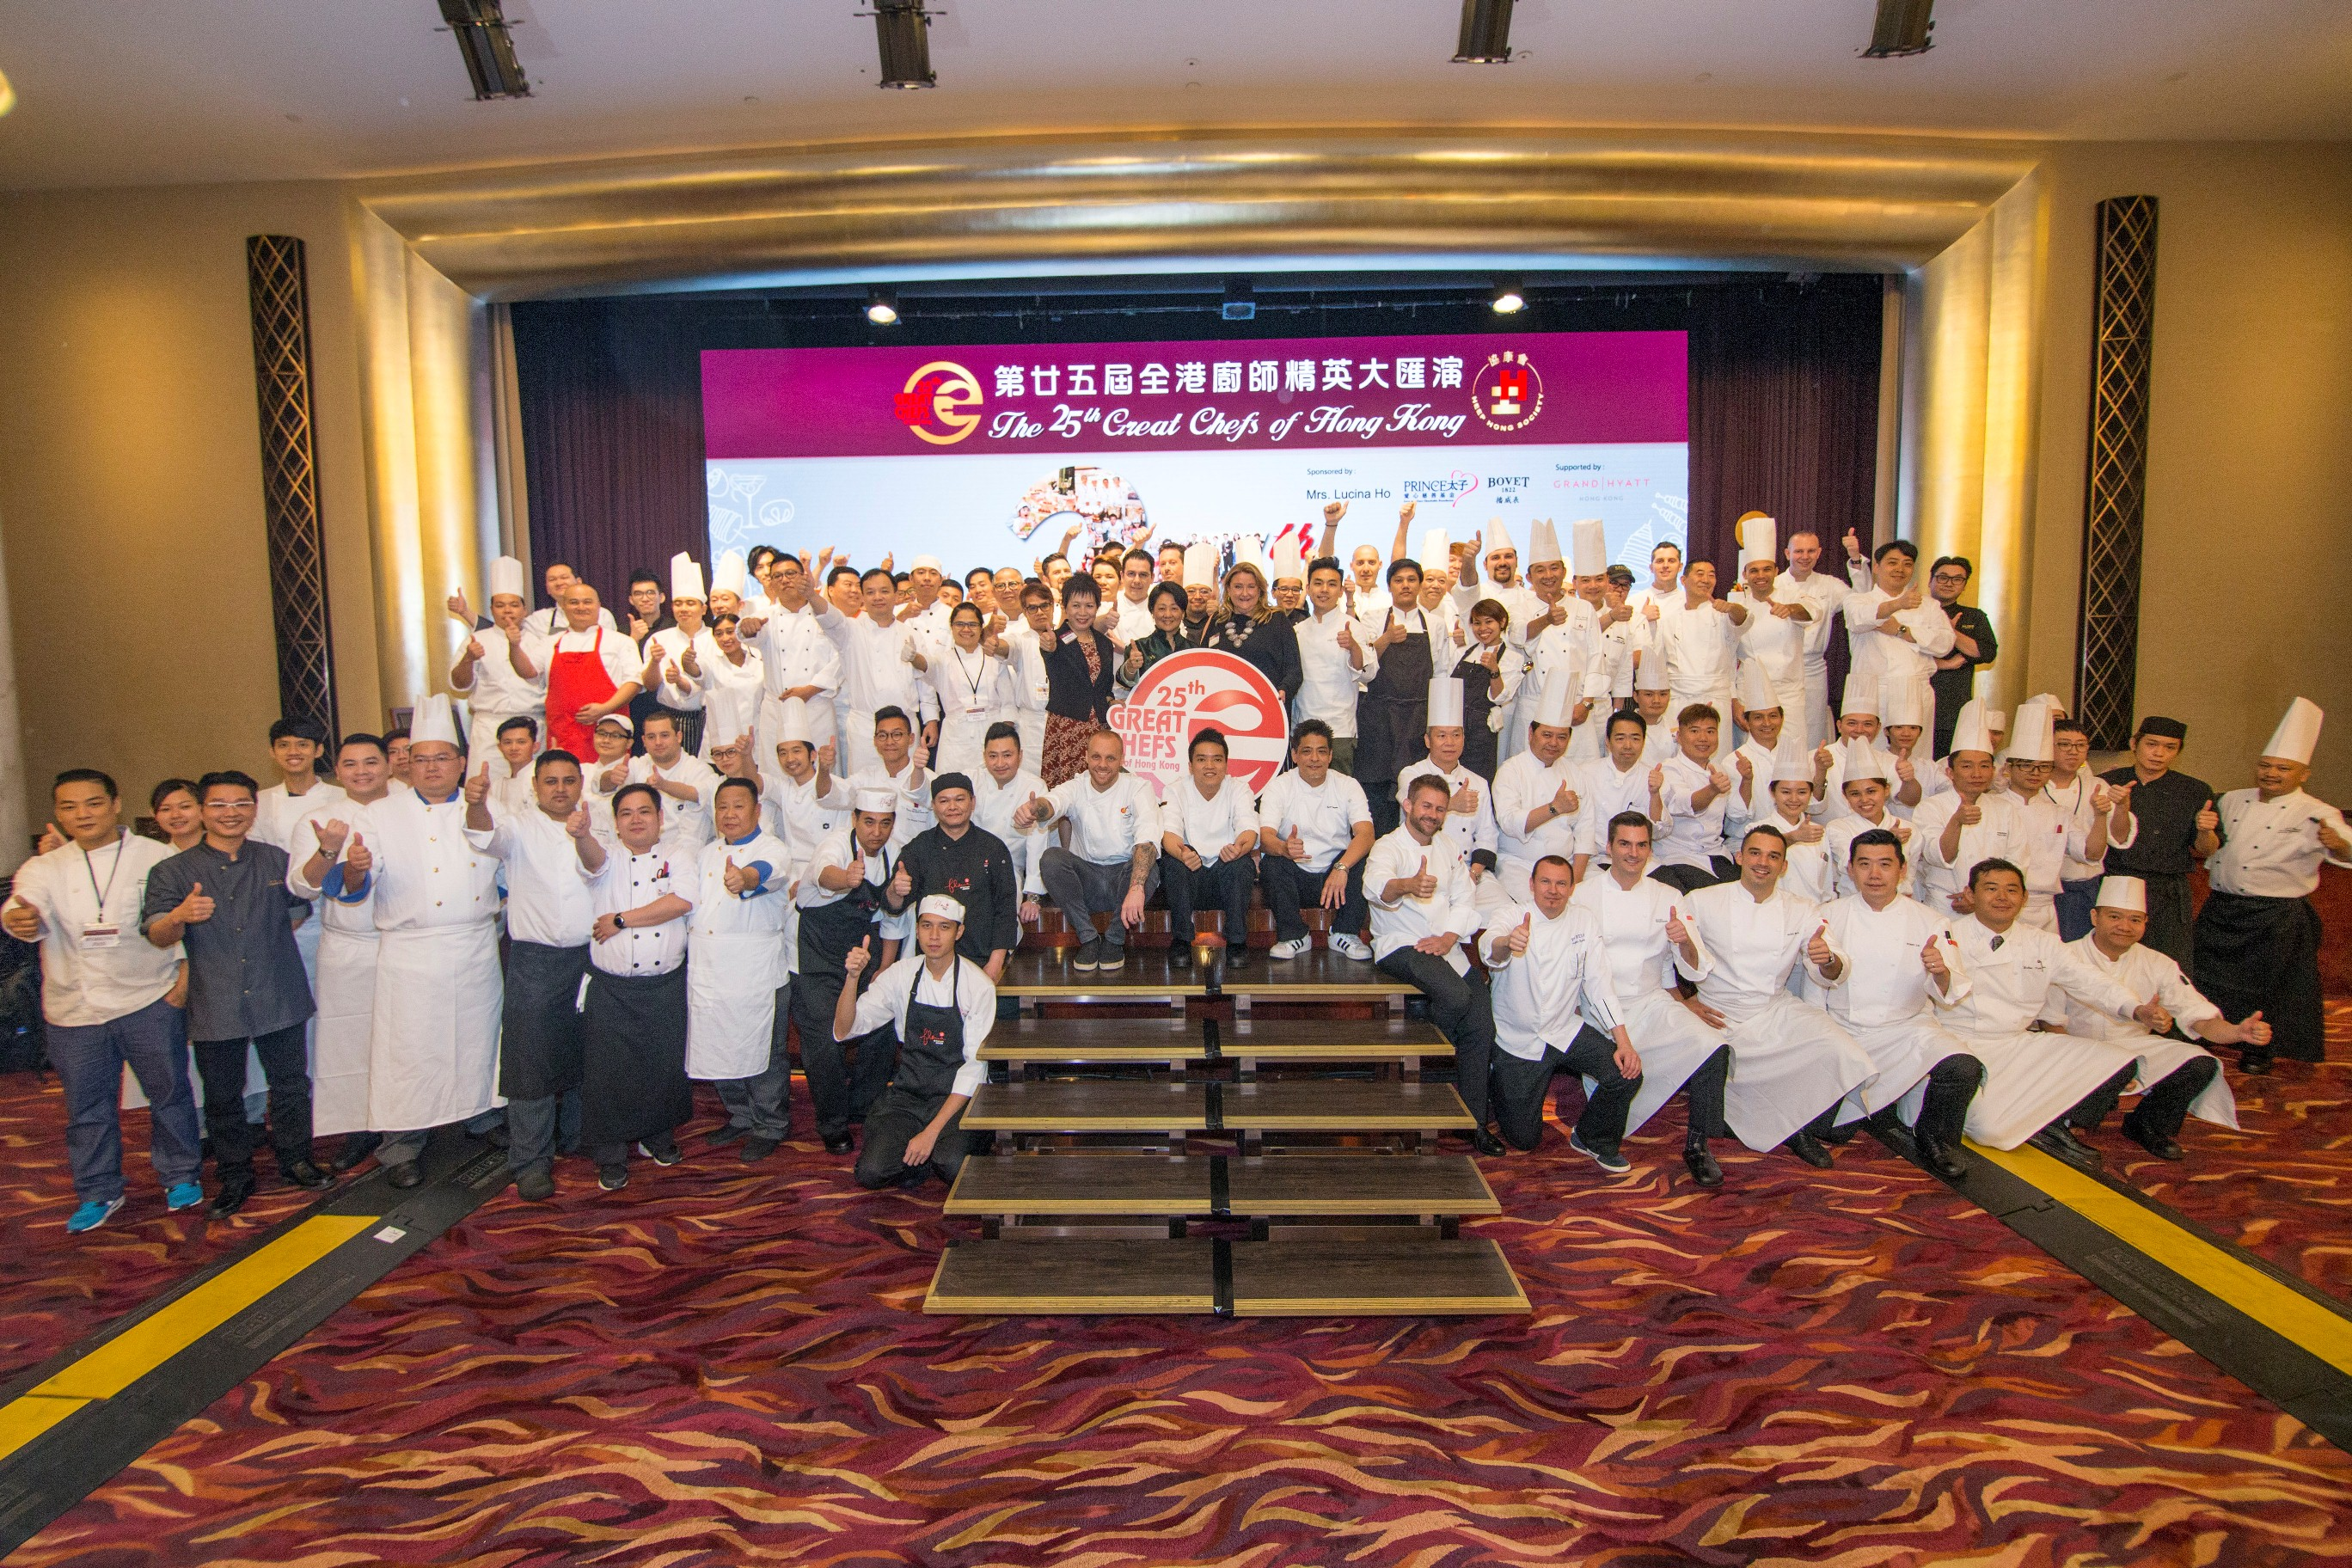 Chefs and participants from 48 of Hong Kong's leading hotels and restaurants gathered under the same roof in support of children with special needs.